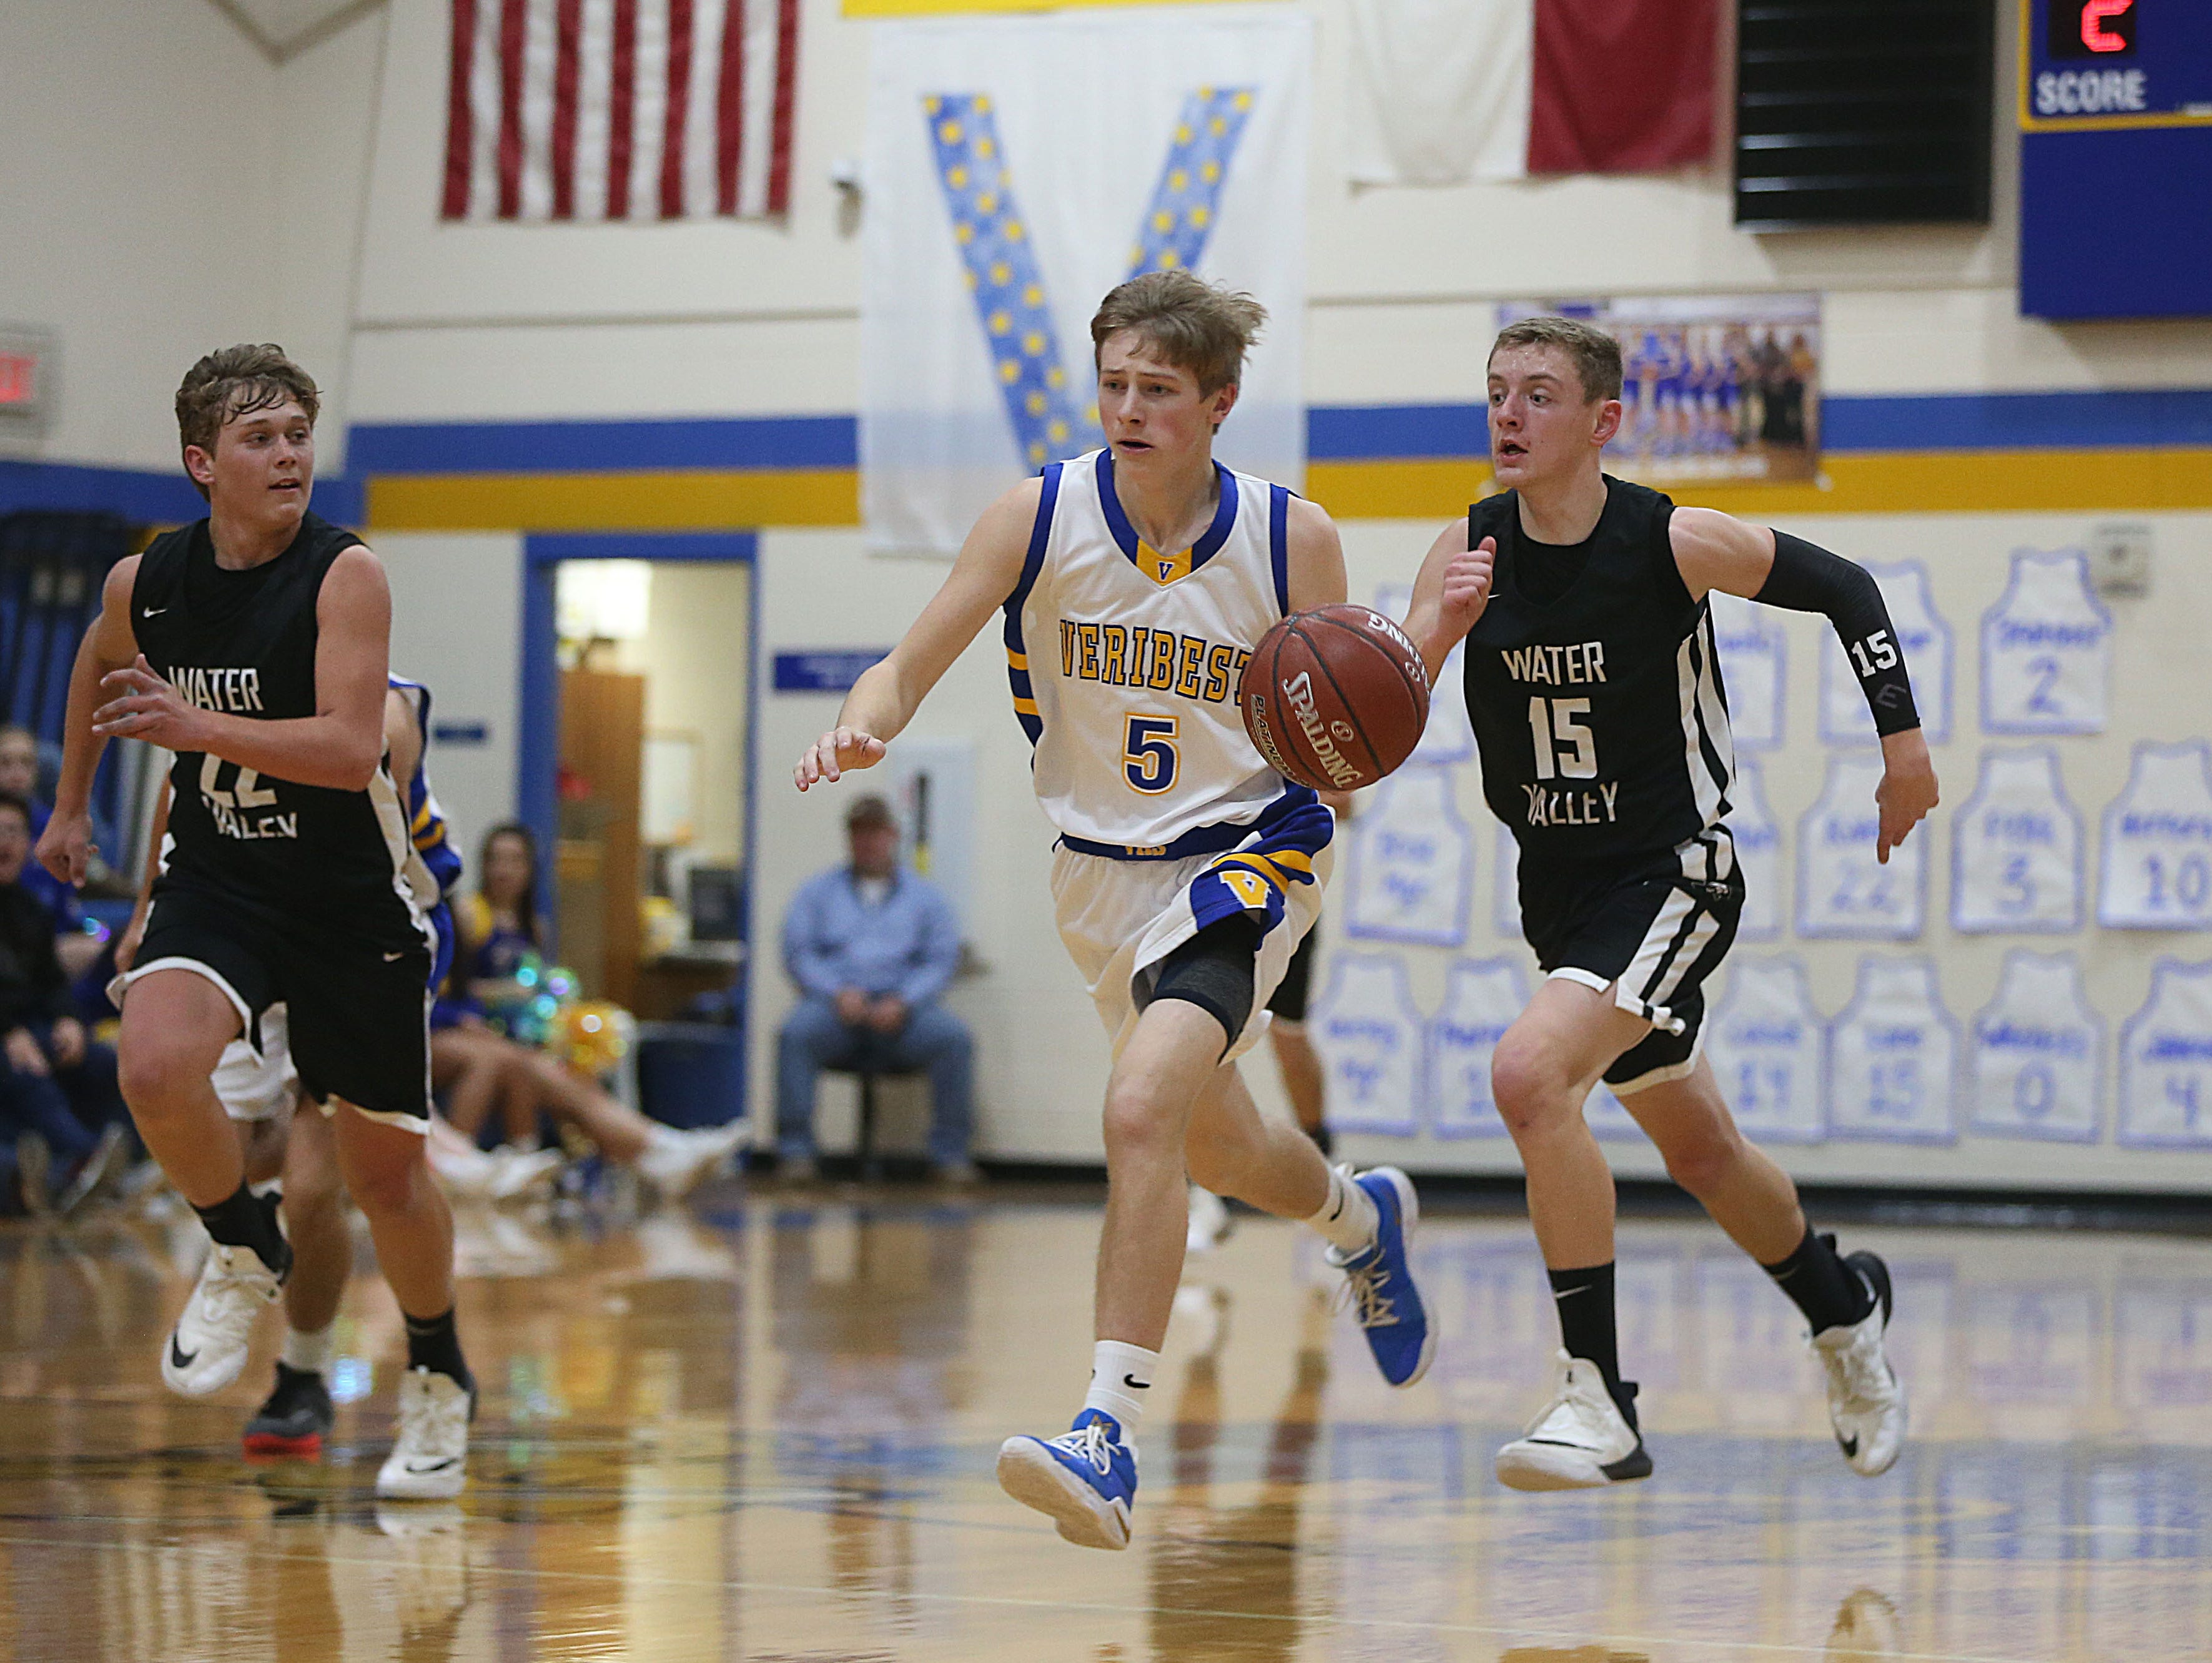 Veribest's Bo Dunn (#5) runs the ball down court followed by Water Valley's C. Hughes (#22) and G. Smith (#15) Tuesday, Jan. 8, 2019 during the game in Veribest.